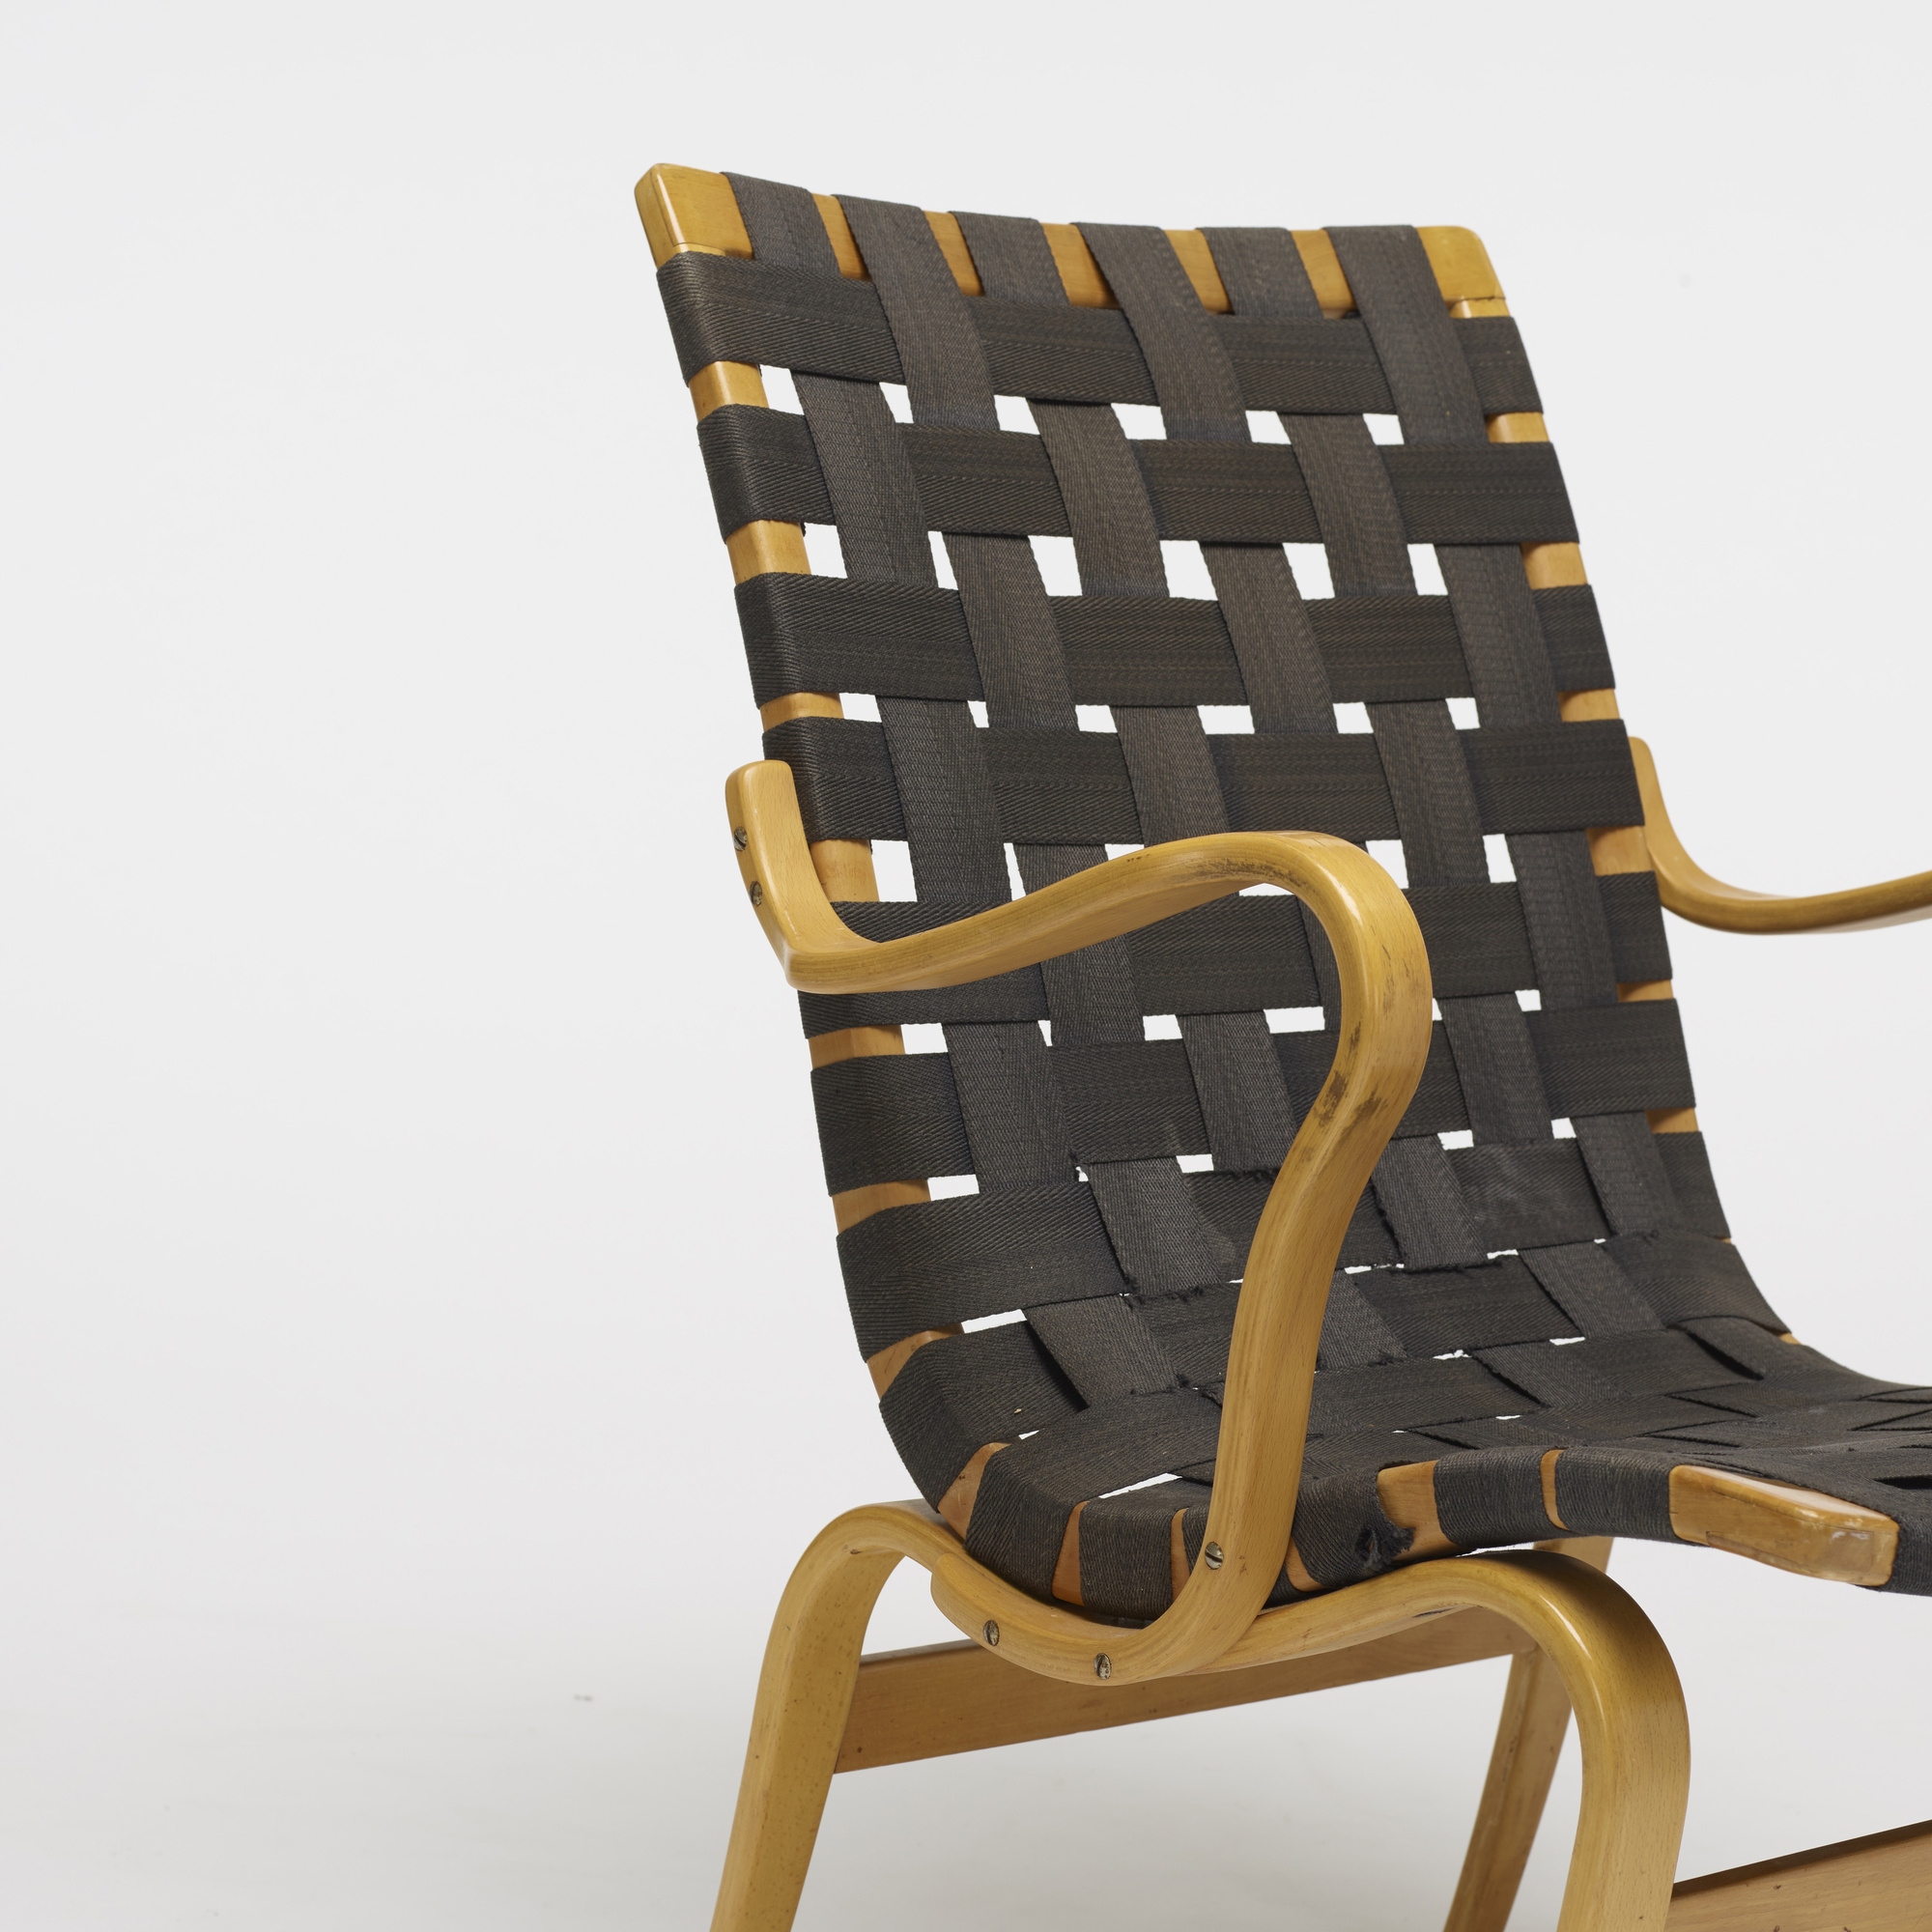 542: Bruno Mathsson / Eva chair (3 of 4)